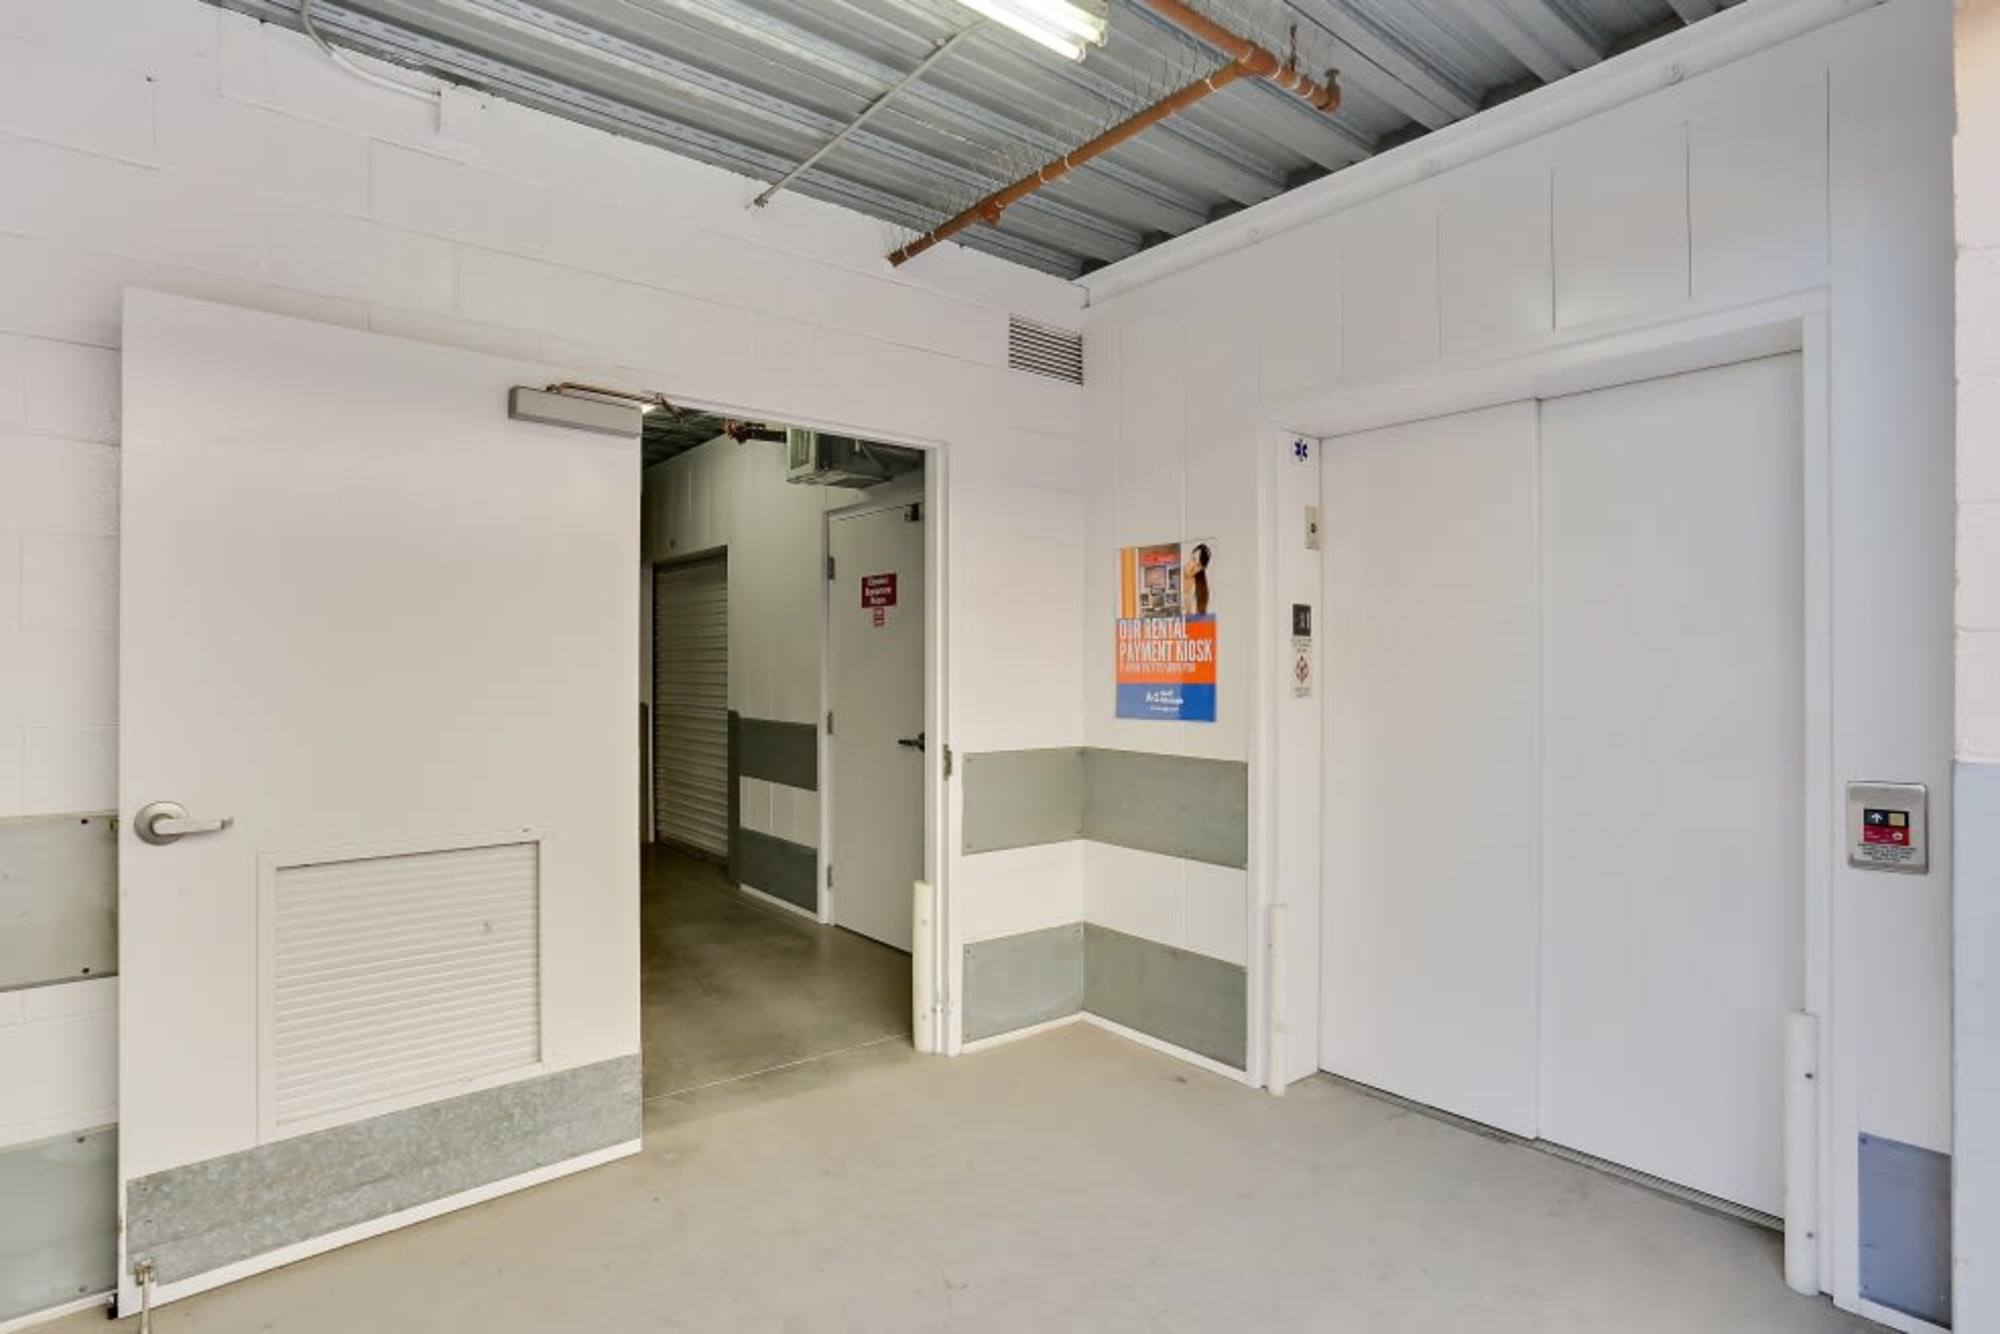 The freight elevator at A-1 Self Storage in San Diego, California